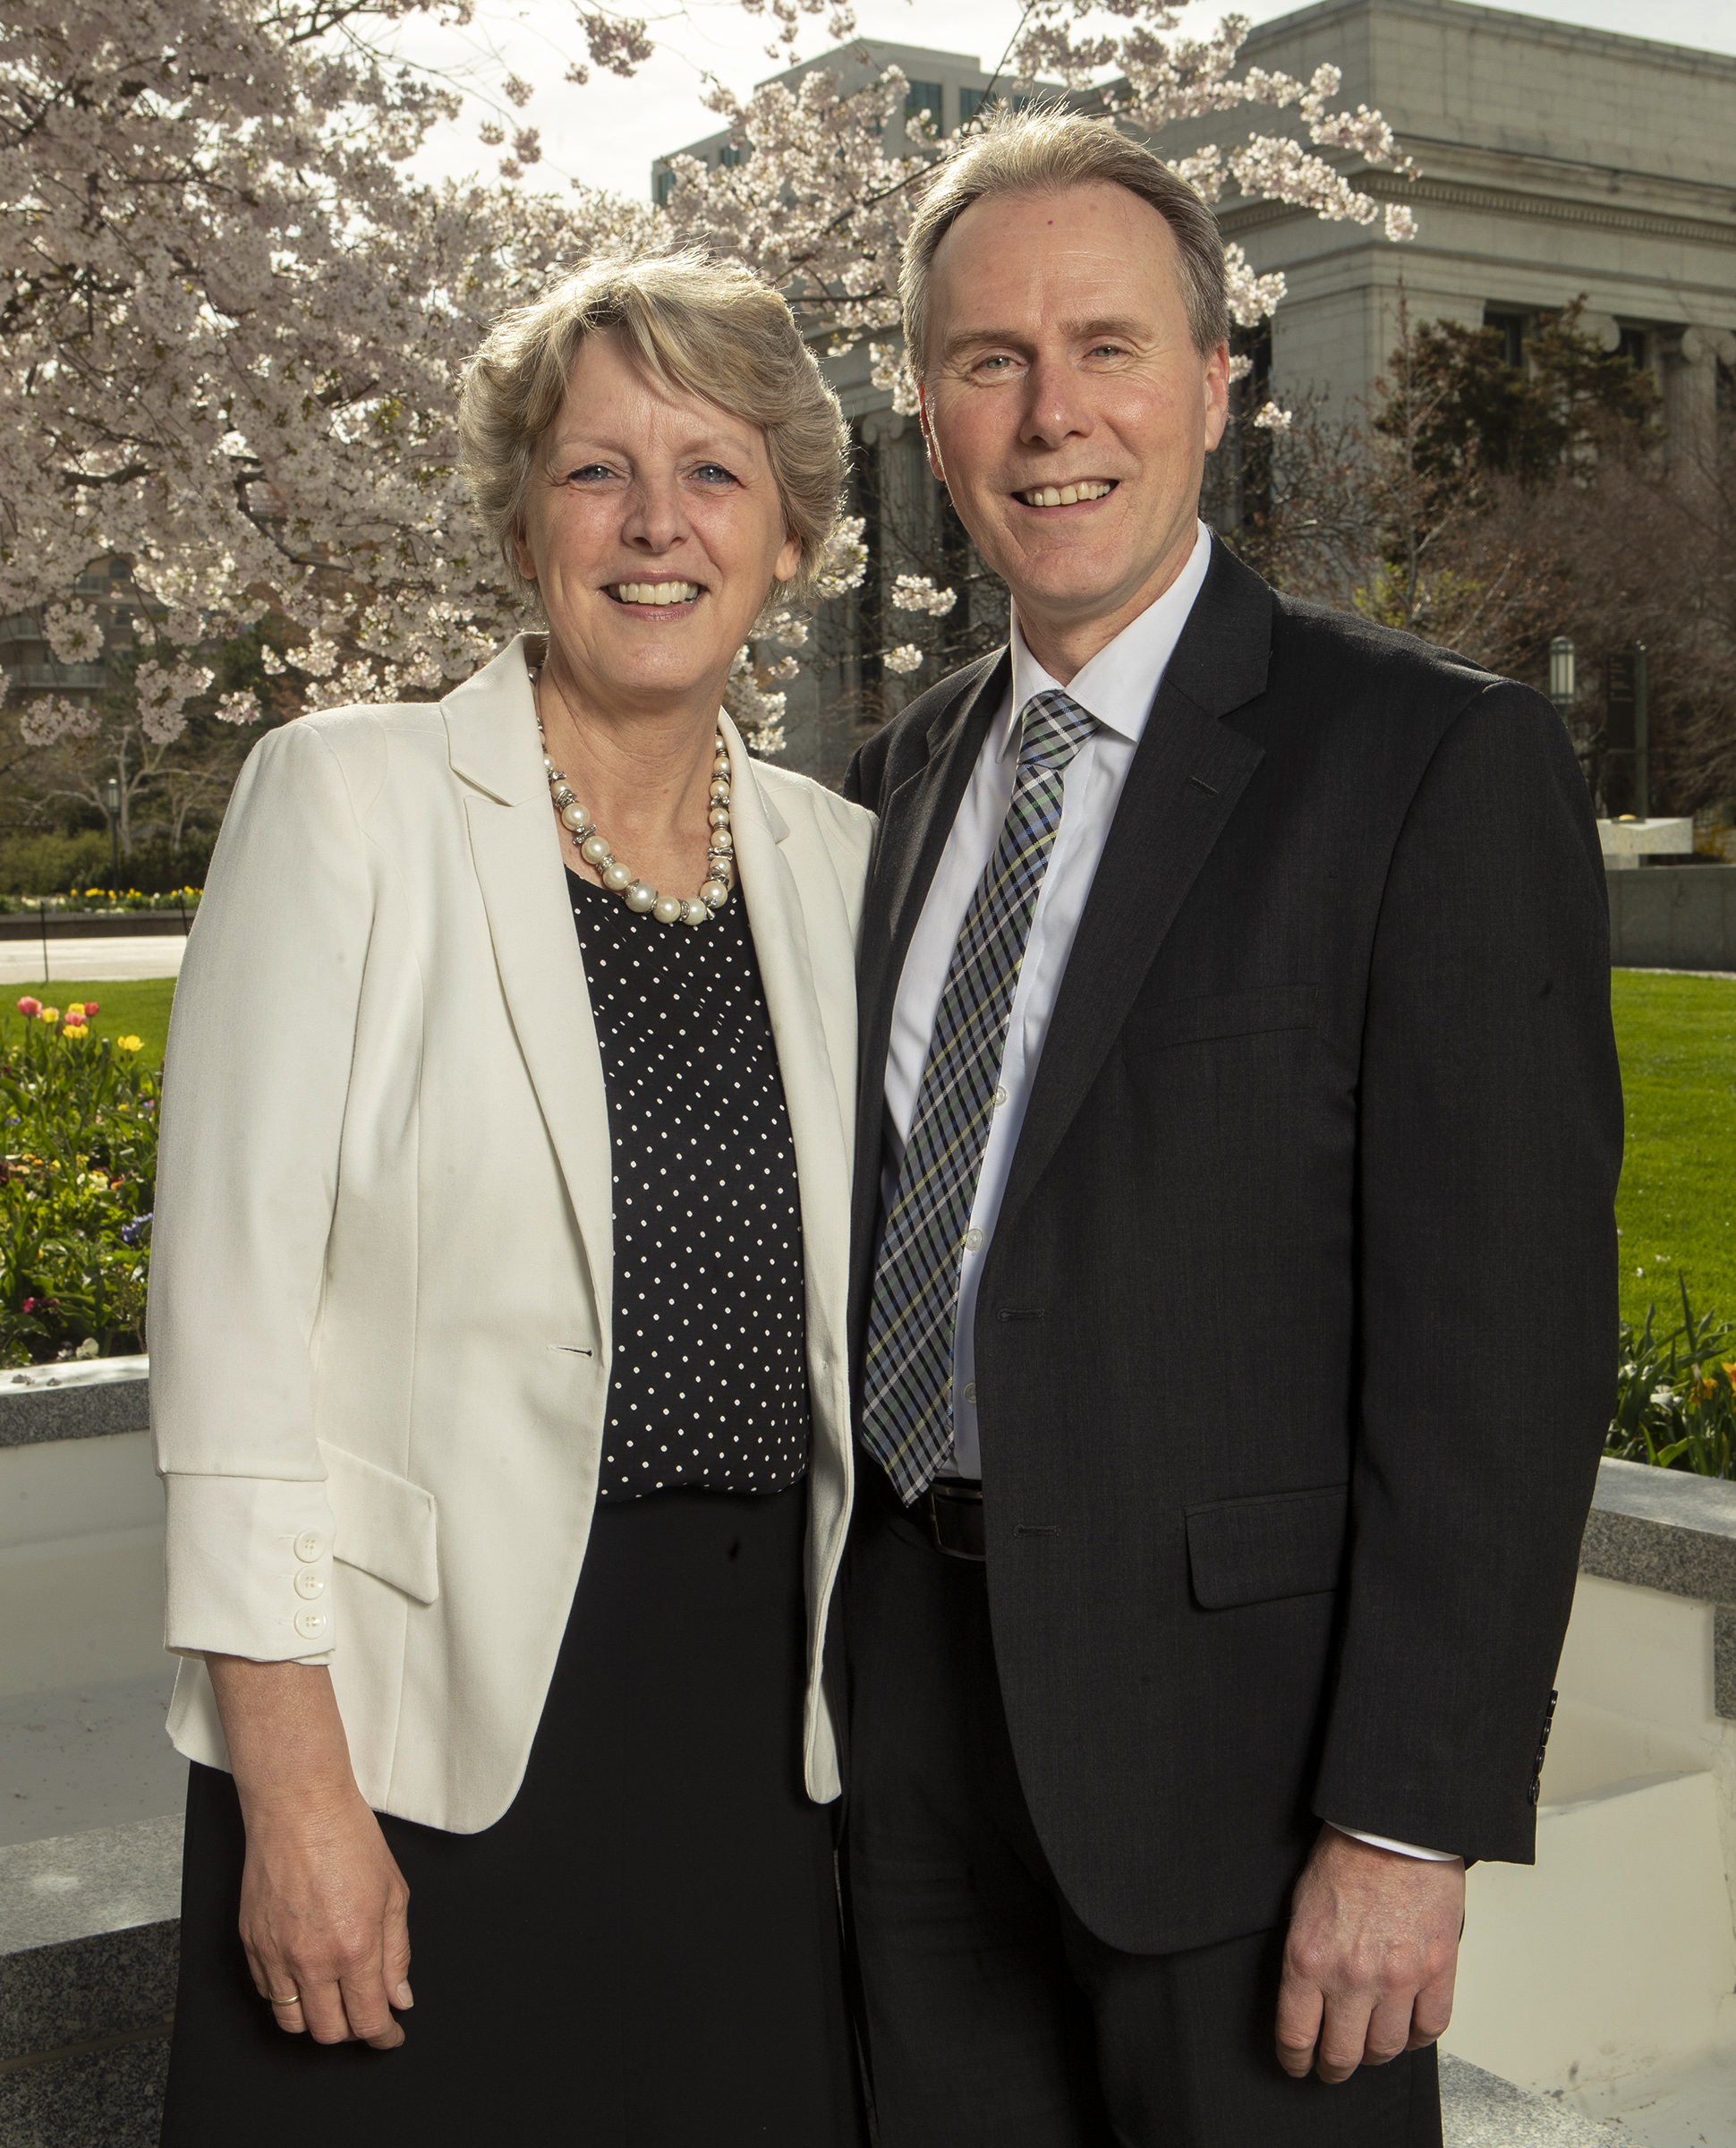 Sister Marjan Boom and Elder Hans T. Boom pose for photos at the Church office building in Salt Lake City on Monday, April 8, 2019. Elder Boom was called to serve as a General Authority Seventy.